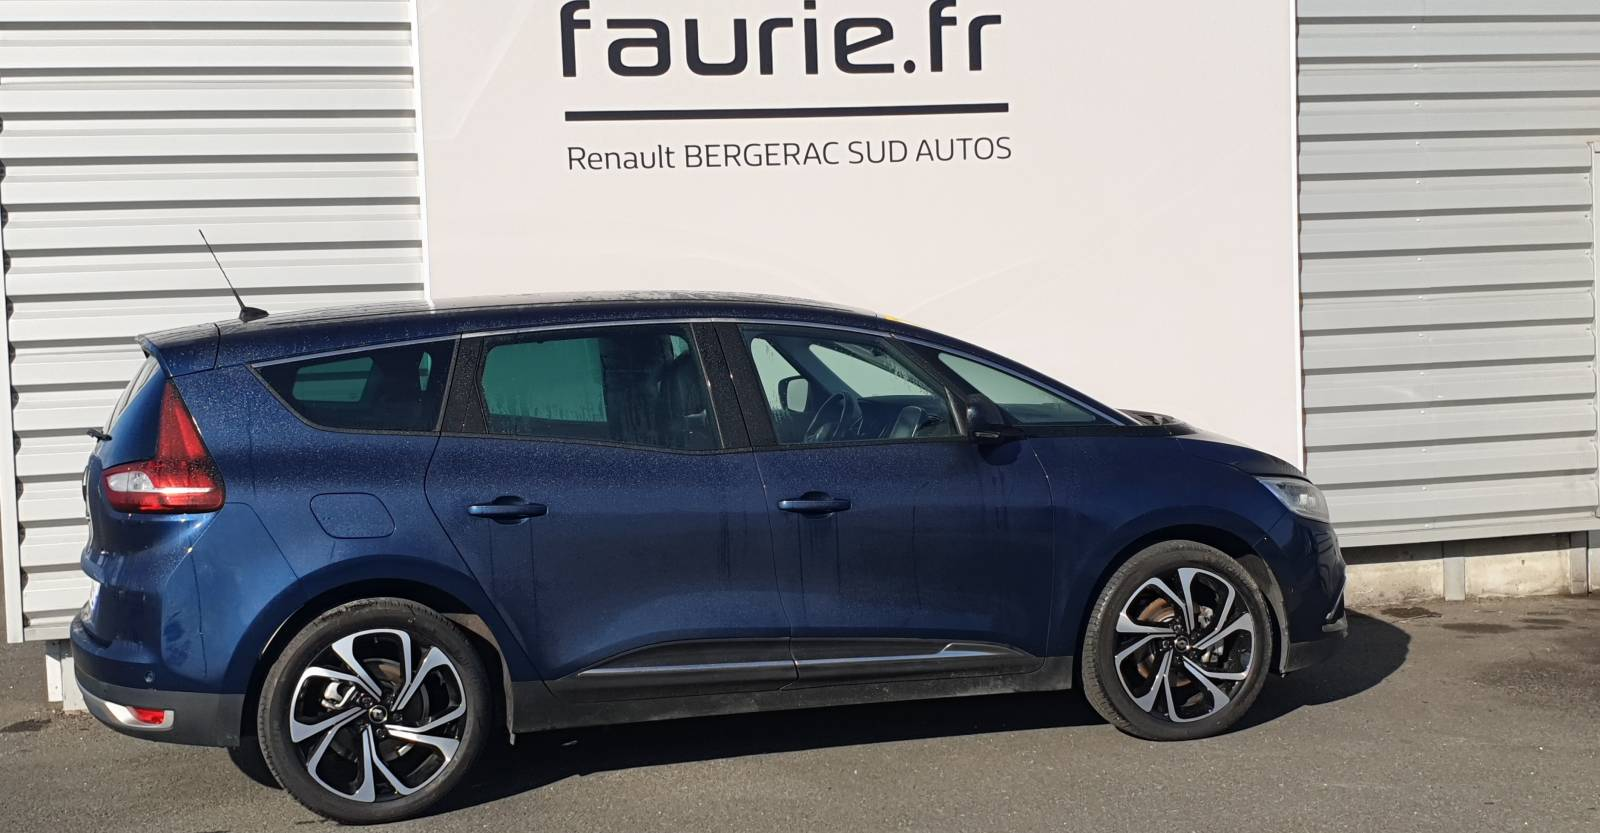 RENAULT Grand Scenic Blue dCi 150 - véhicule d'occasion - Site Internet Faurie - Renault - Faurie Auto Bergerac - 24100 - Bergerac - 4